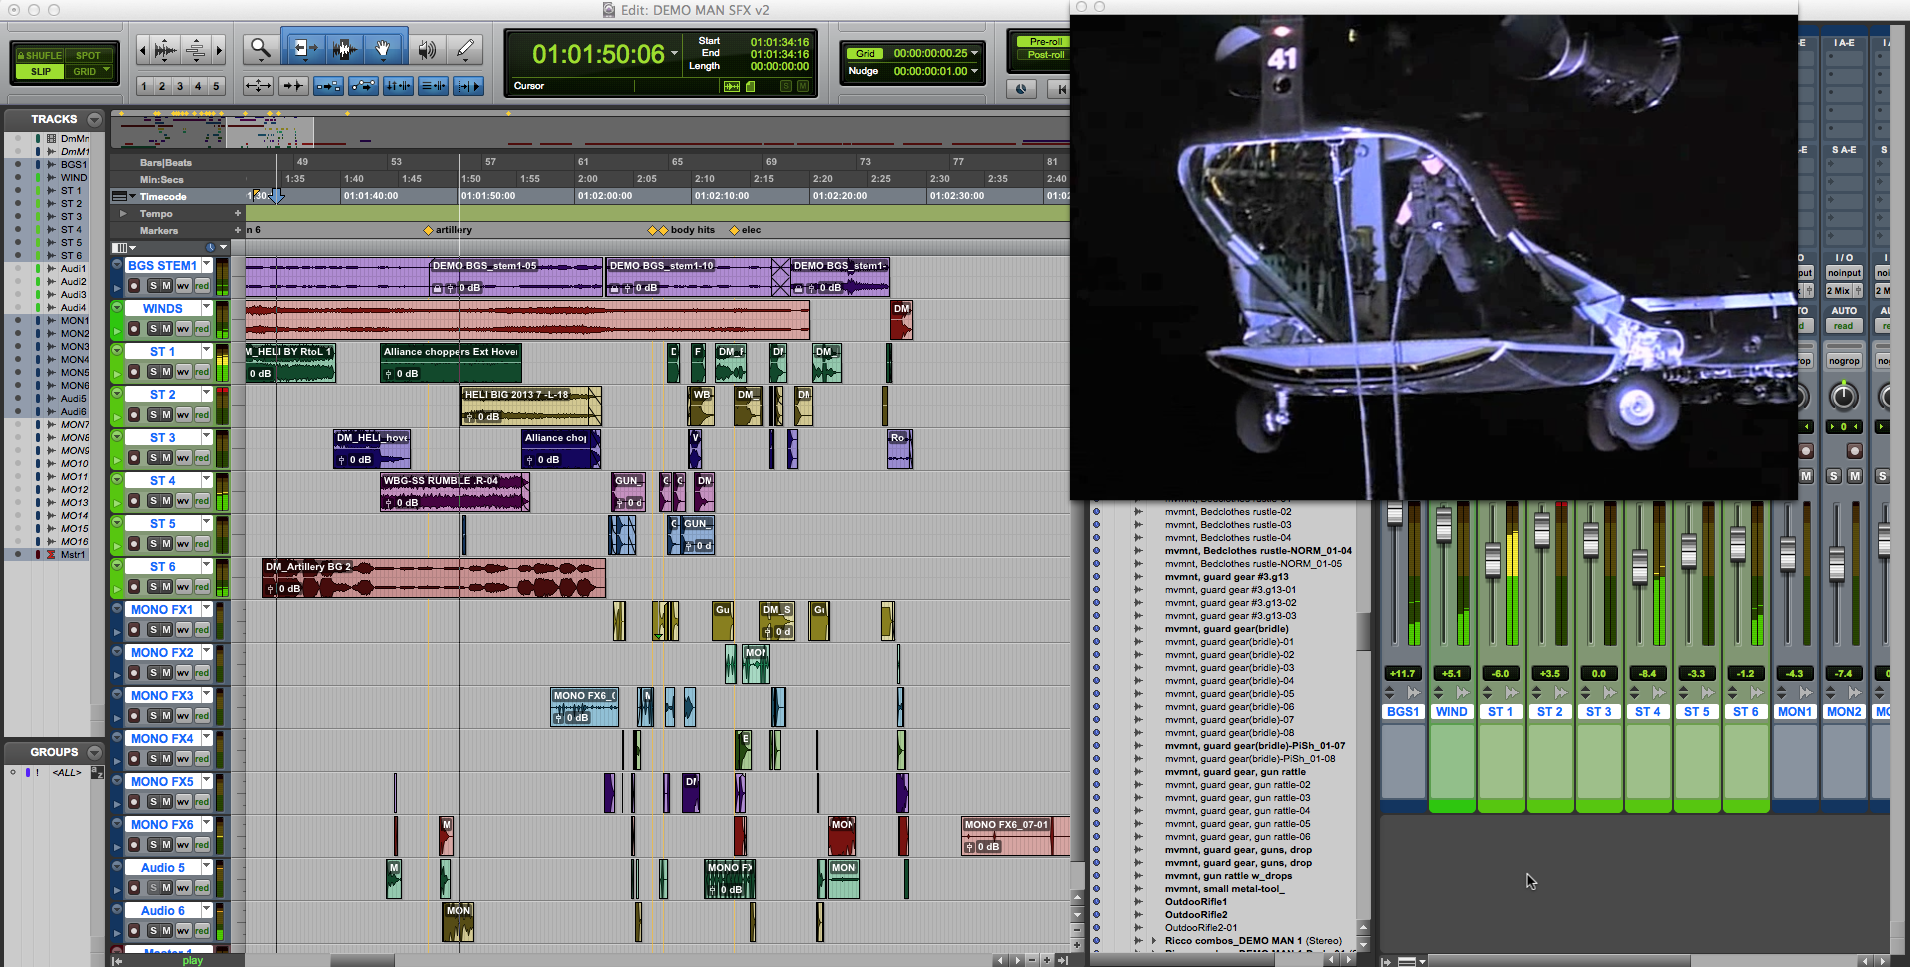 Sound FX, Foley, Mixing and Editing